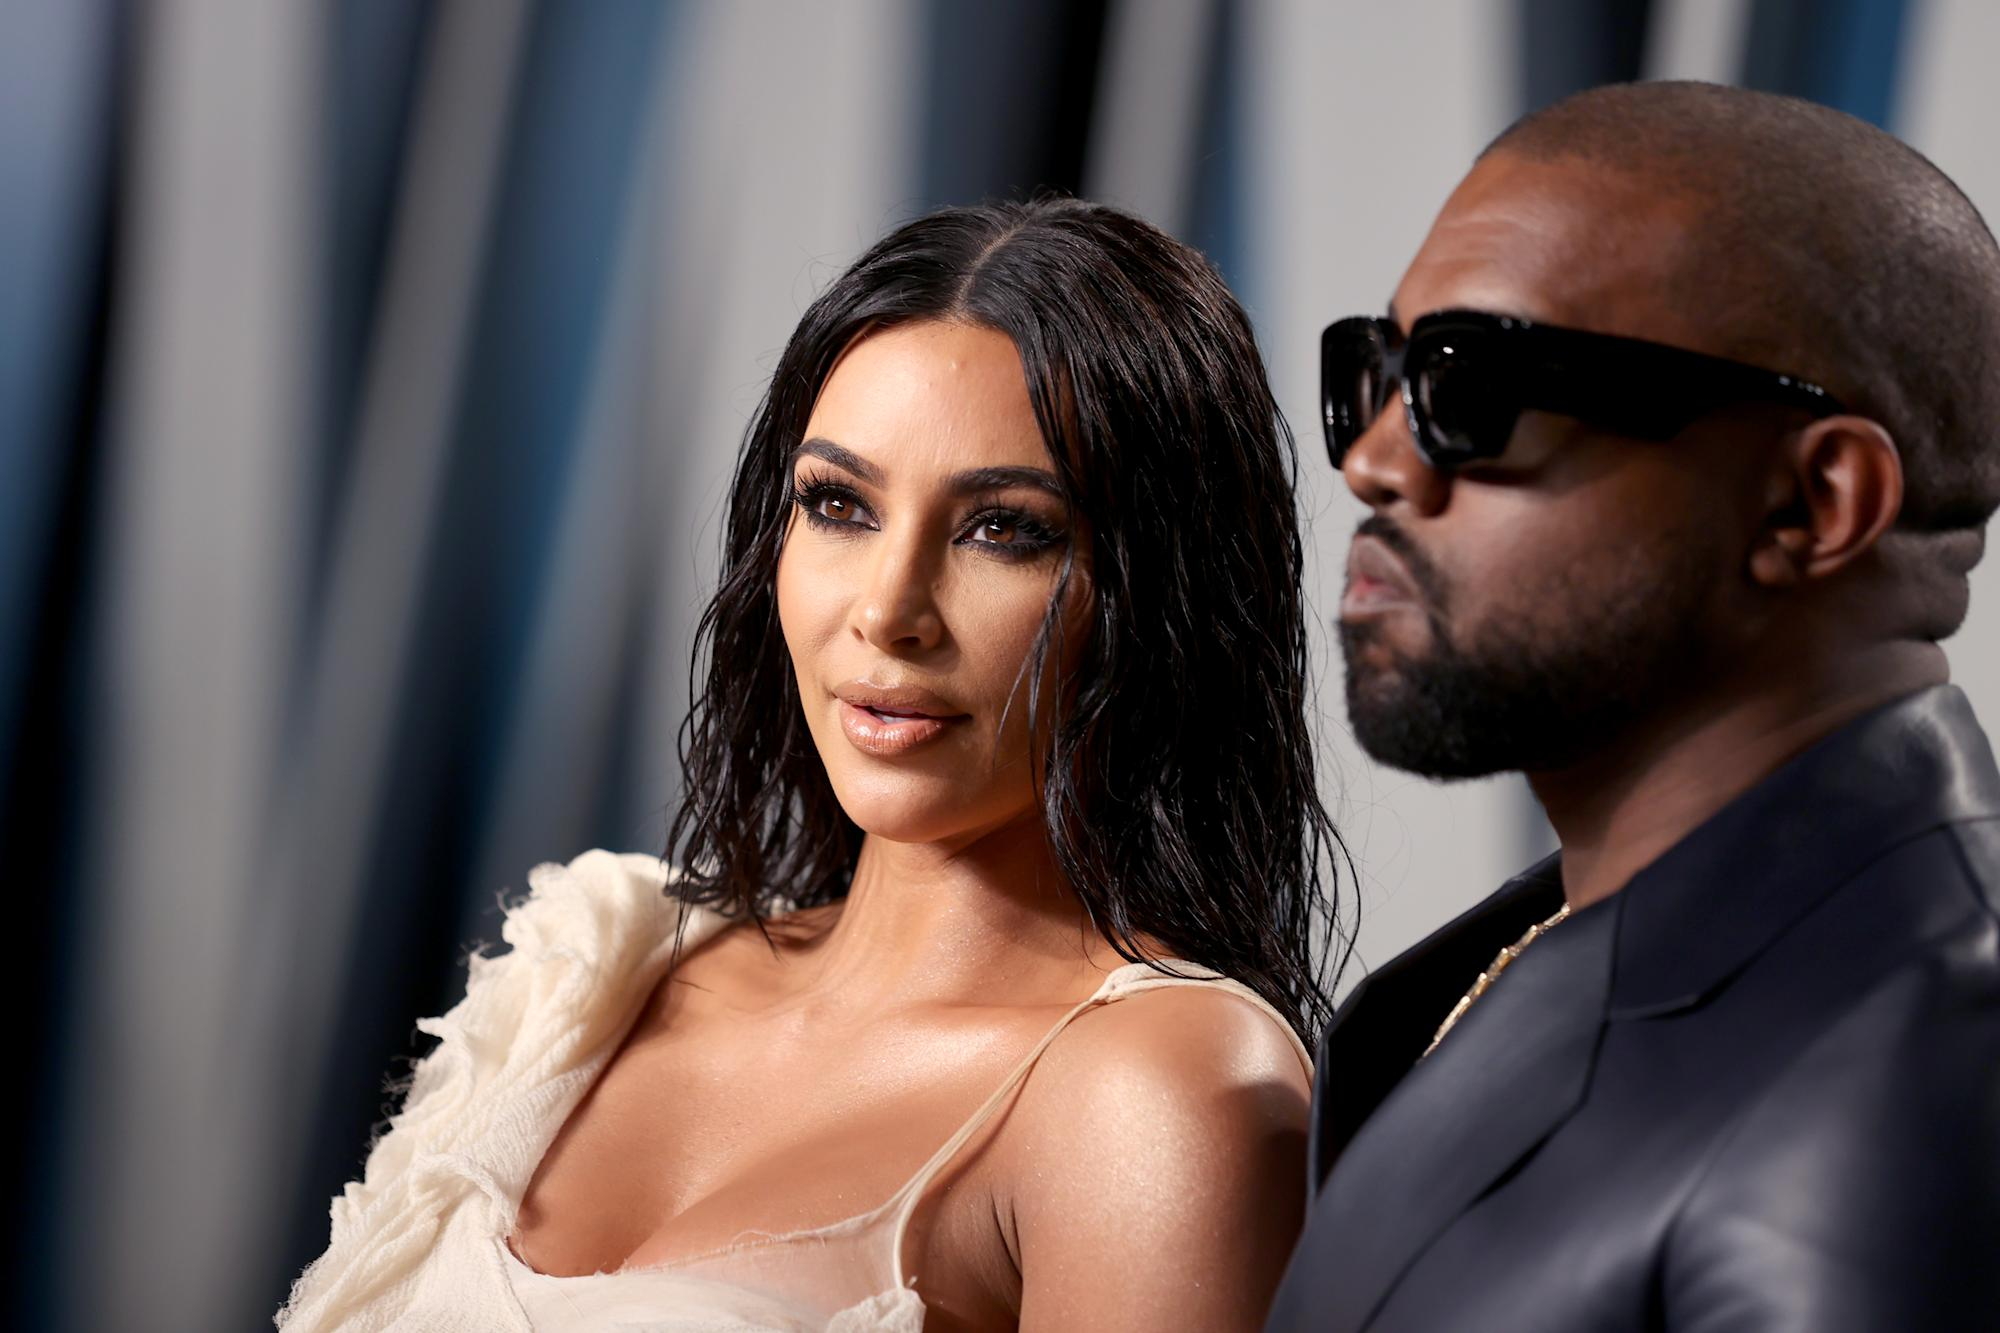 No shortage of signs that Kim Kardashian and Kanye West's marriage was in trouble